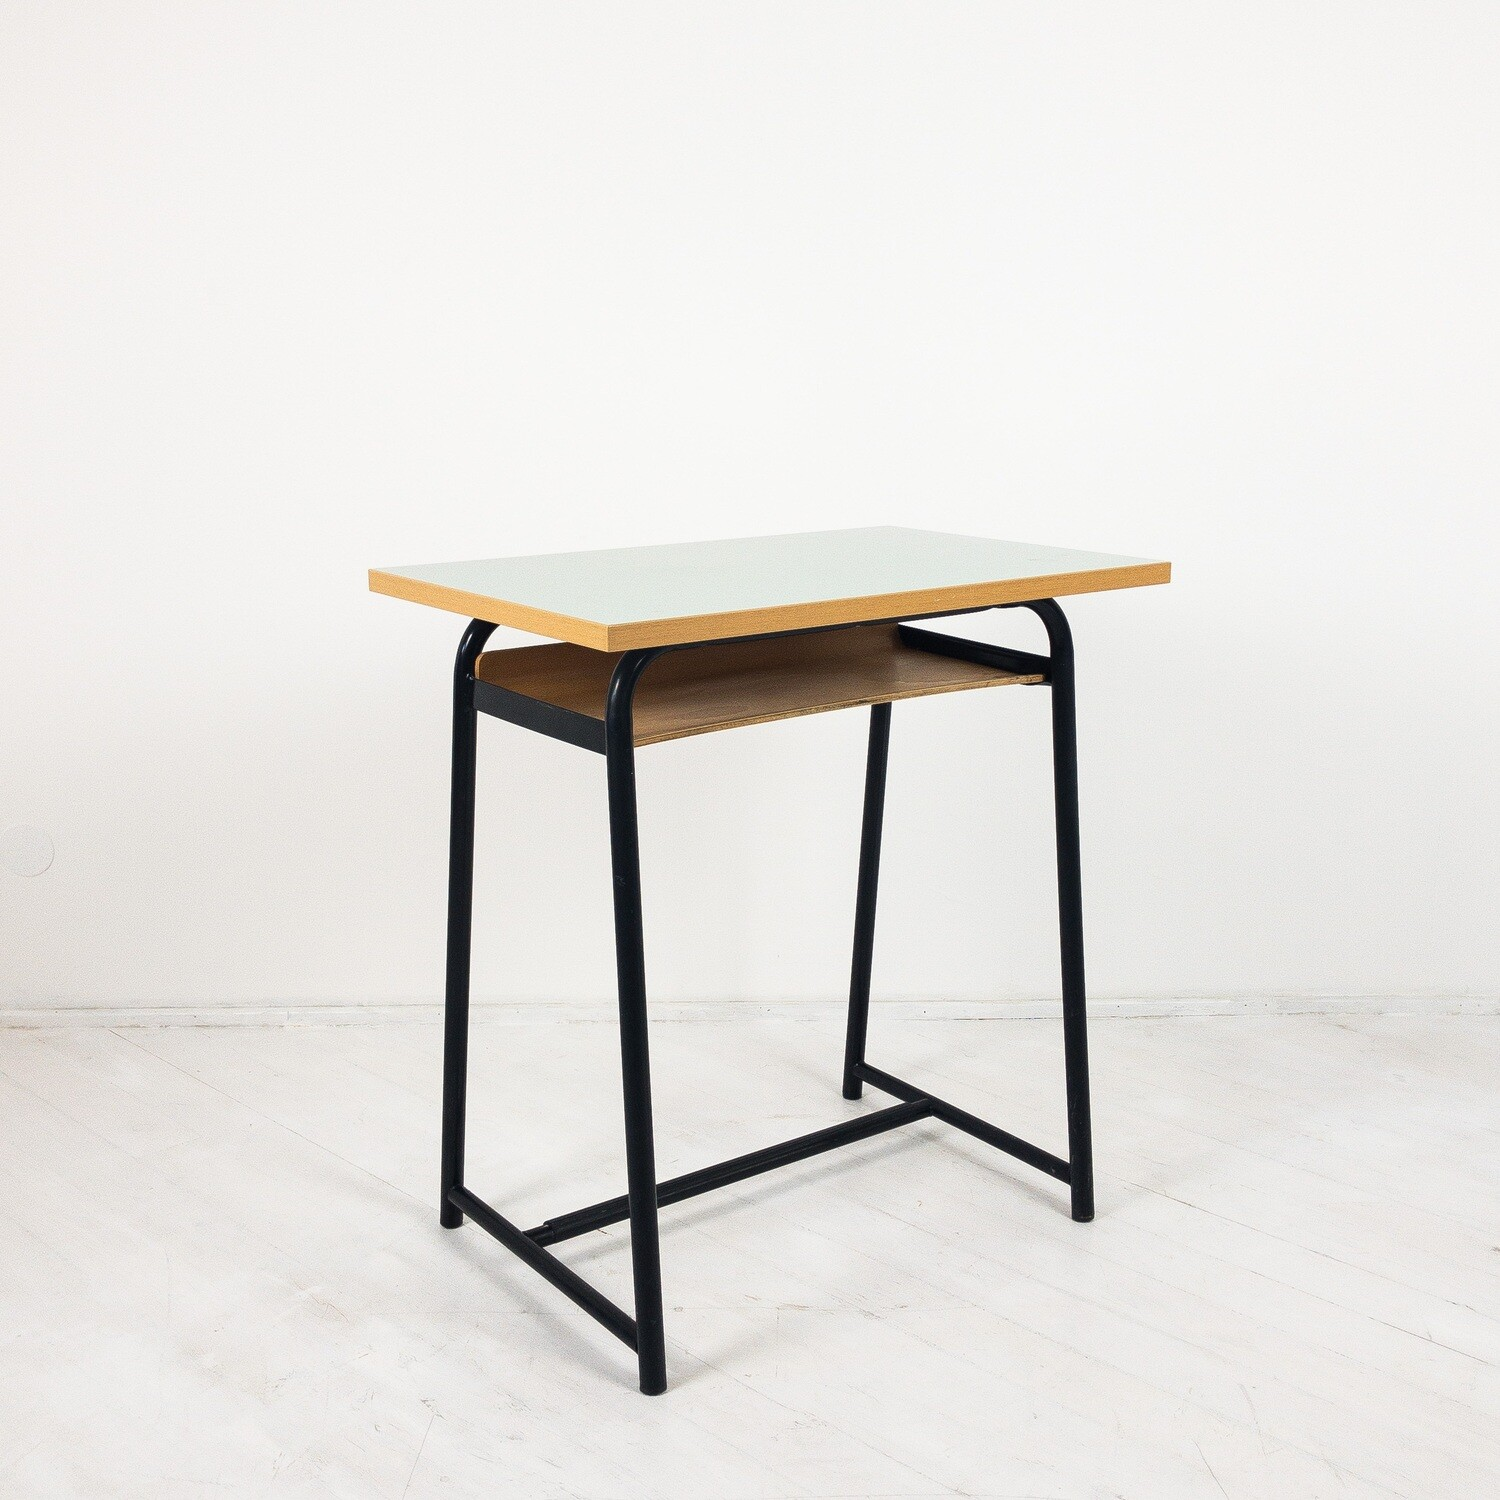 Formica school desk from the 1960s